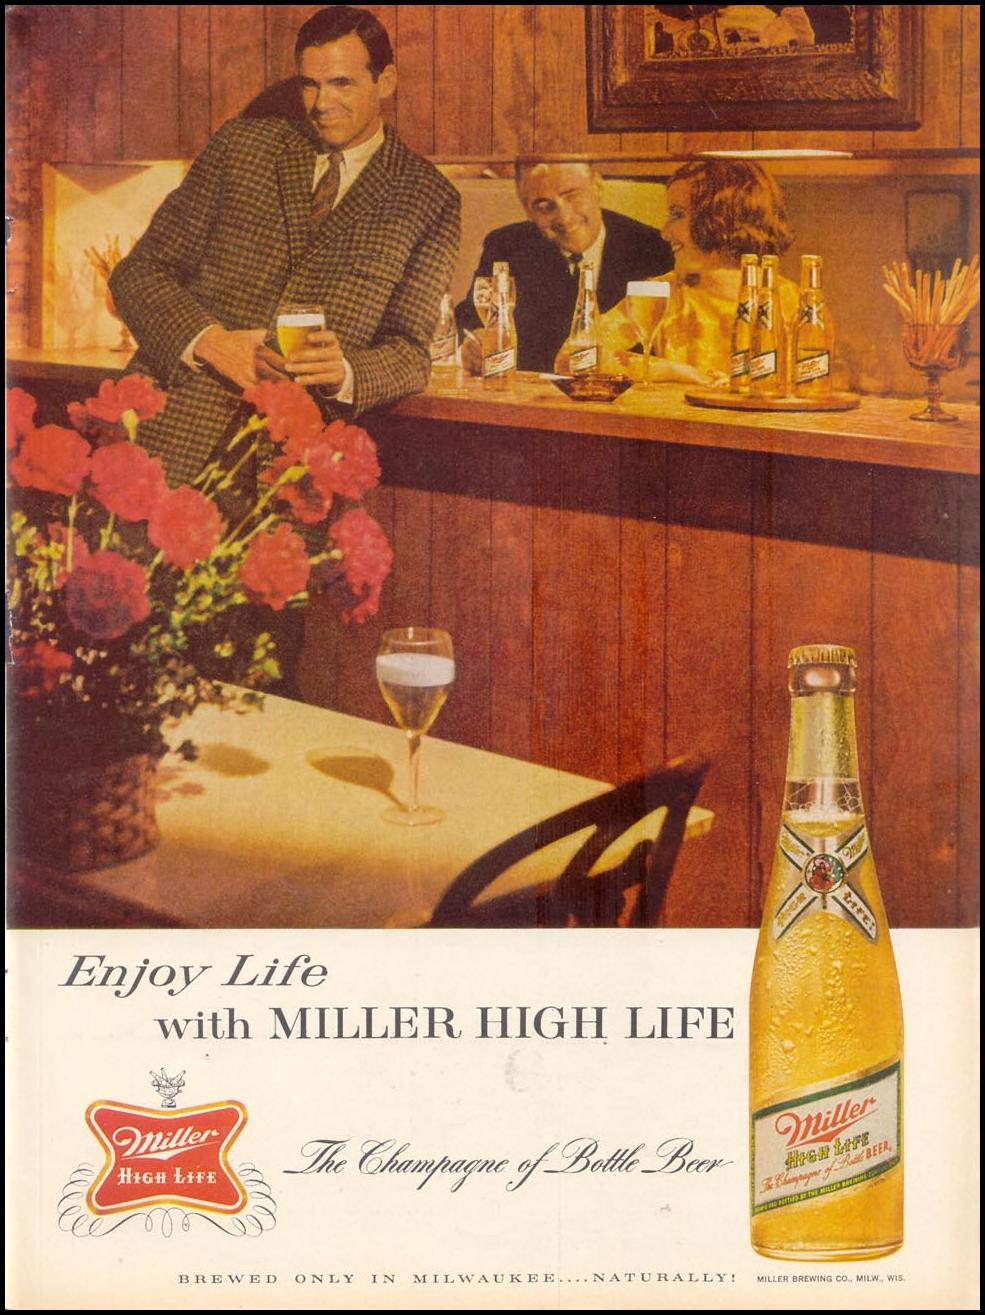 MILLER HIGH LIFE BEER TIME 12/06/1963